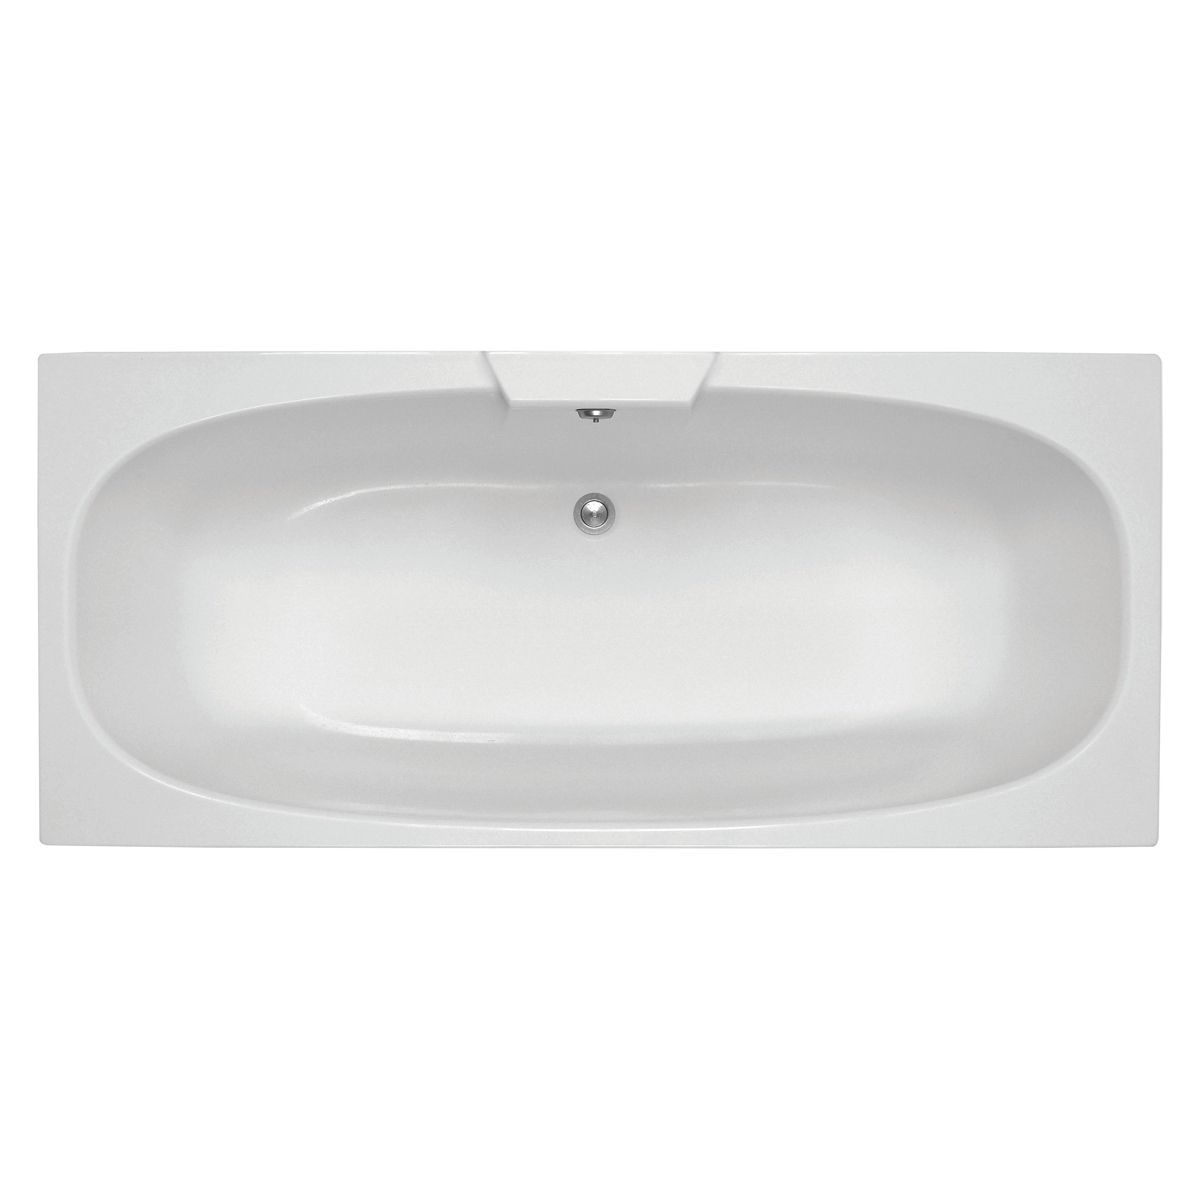 Frontline Altair Double Ended Tungstenite Chromatherapy Bath 1700 x 750mm